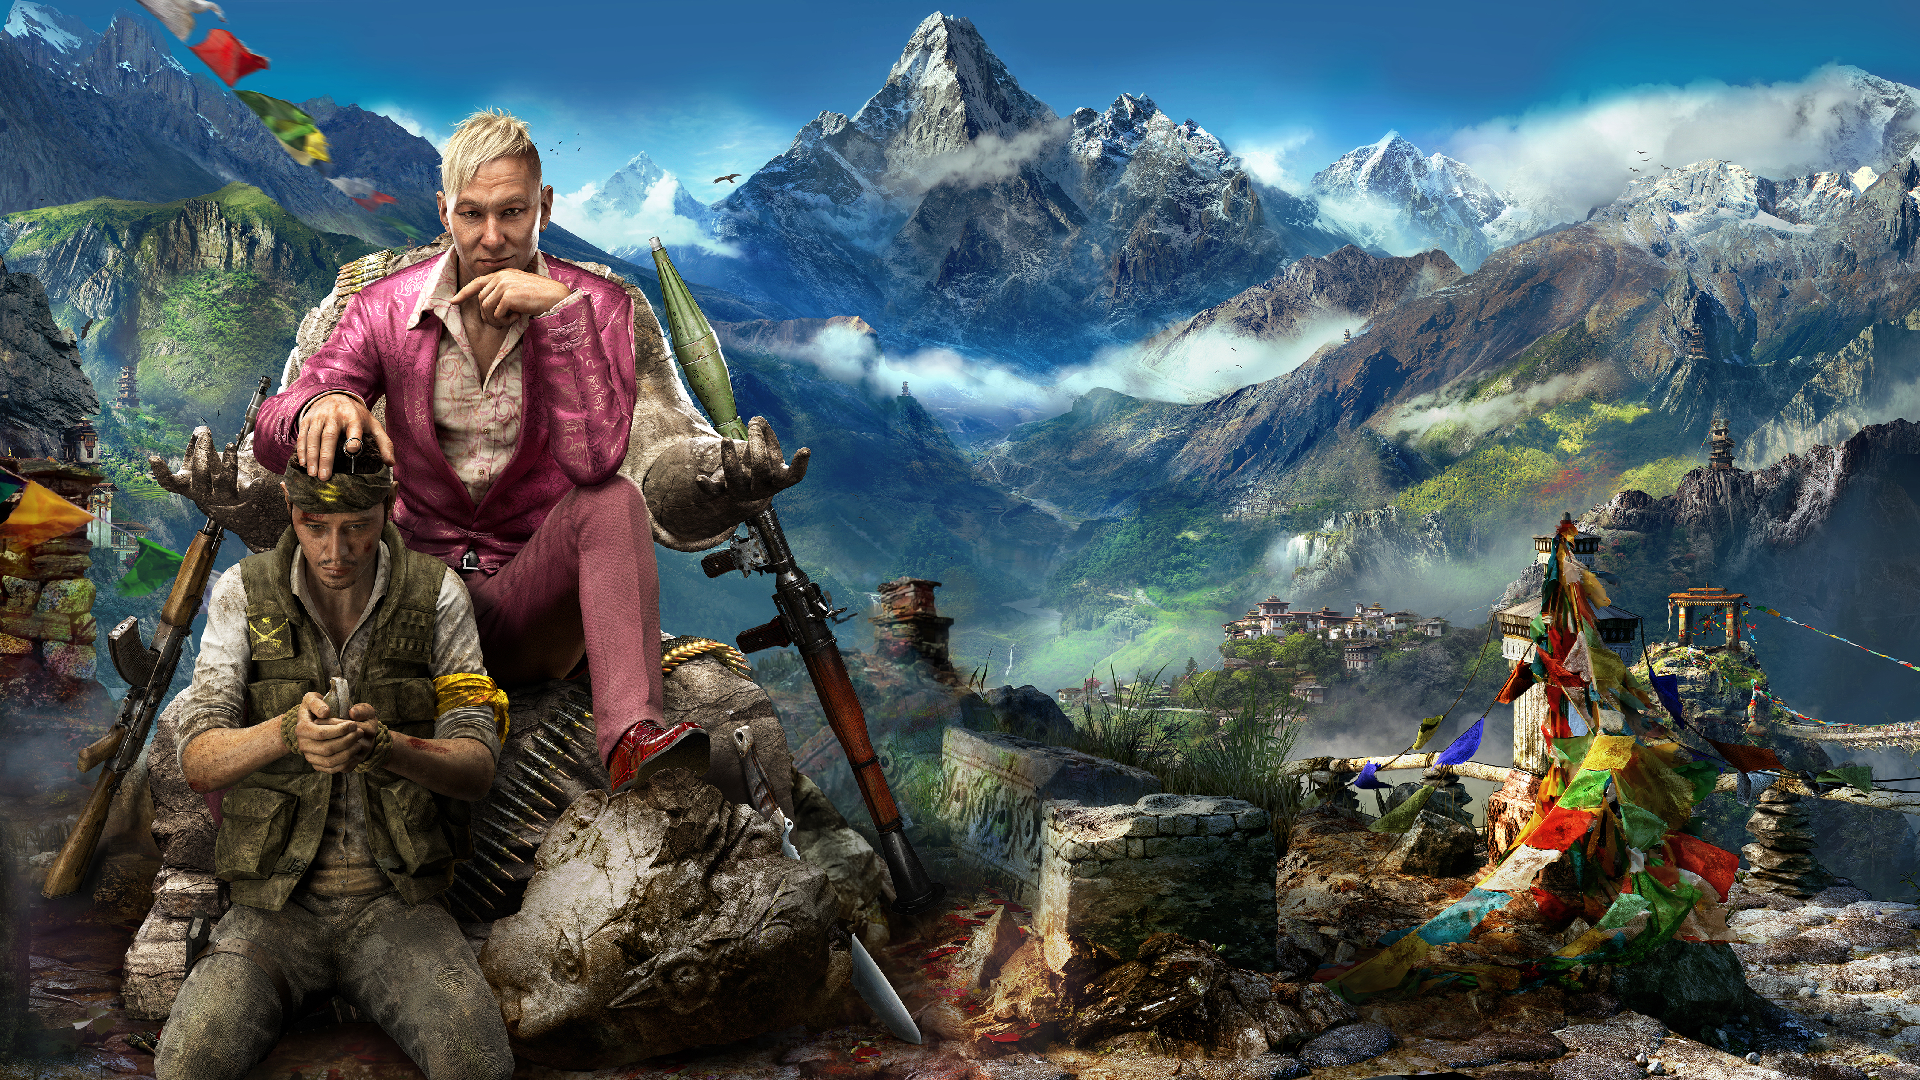 far cry 4 wallpaper 1080x1920